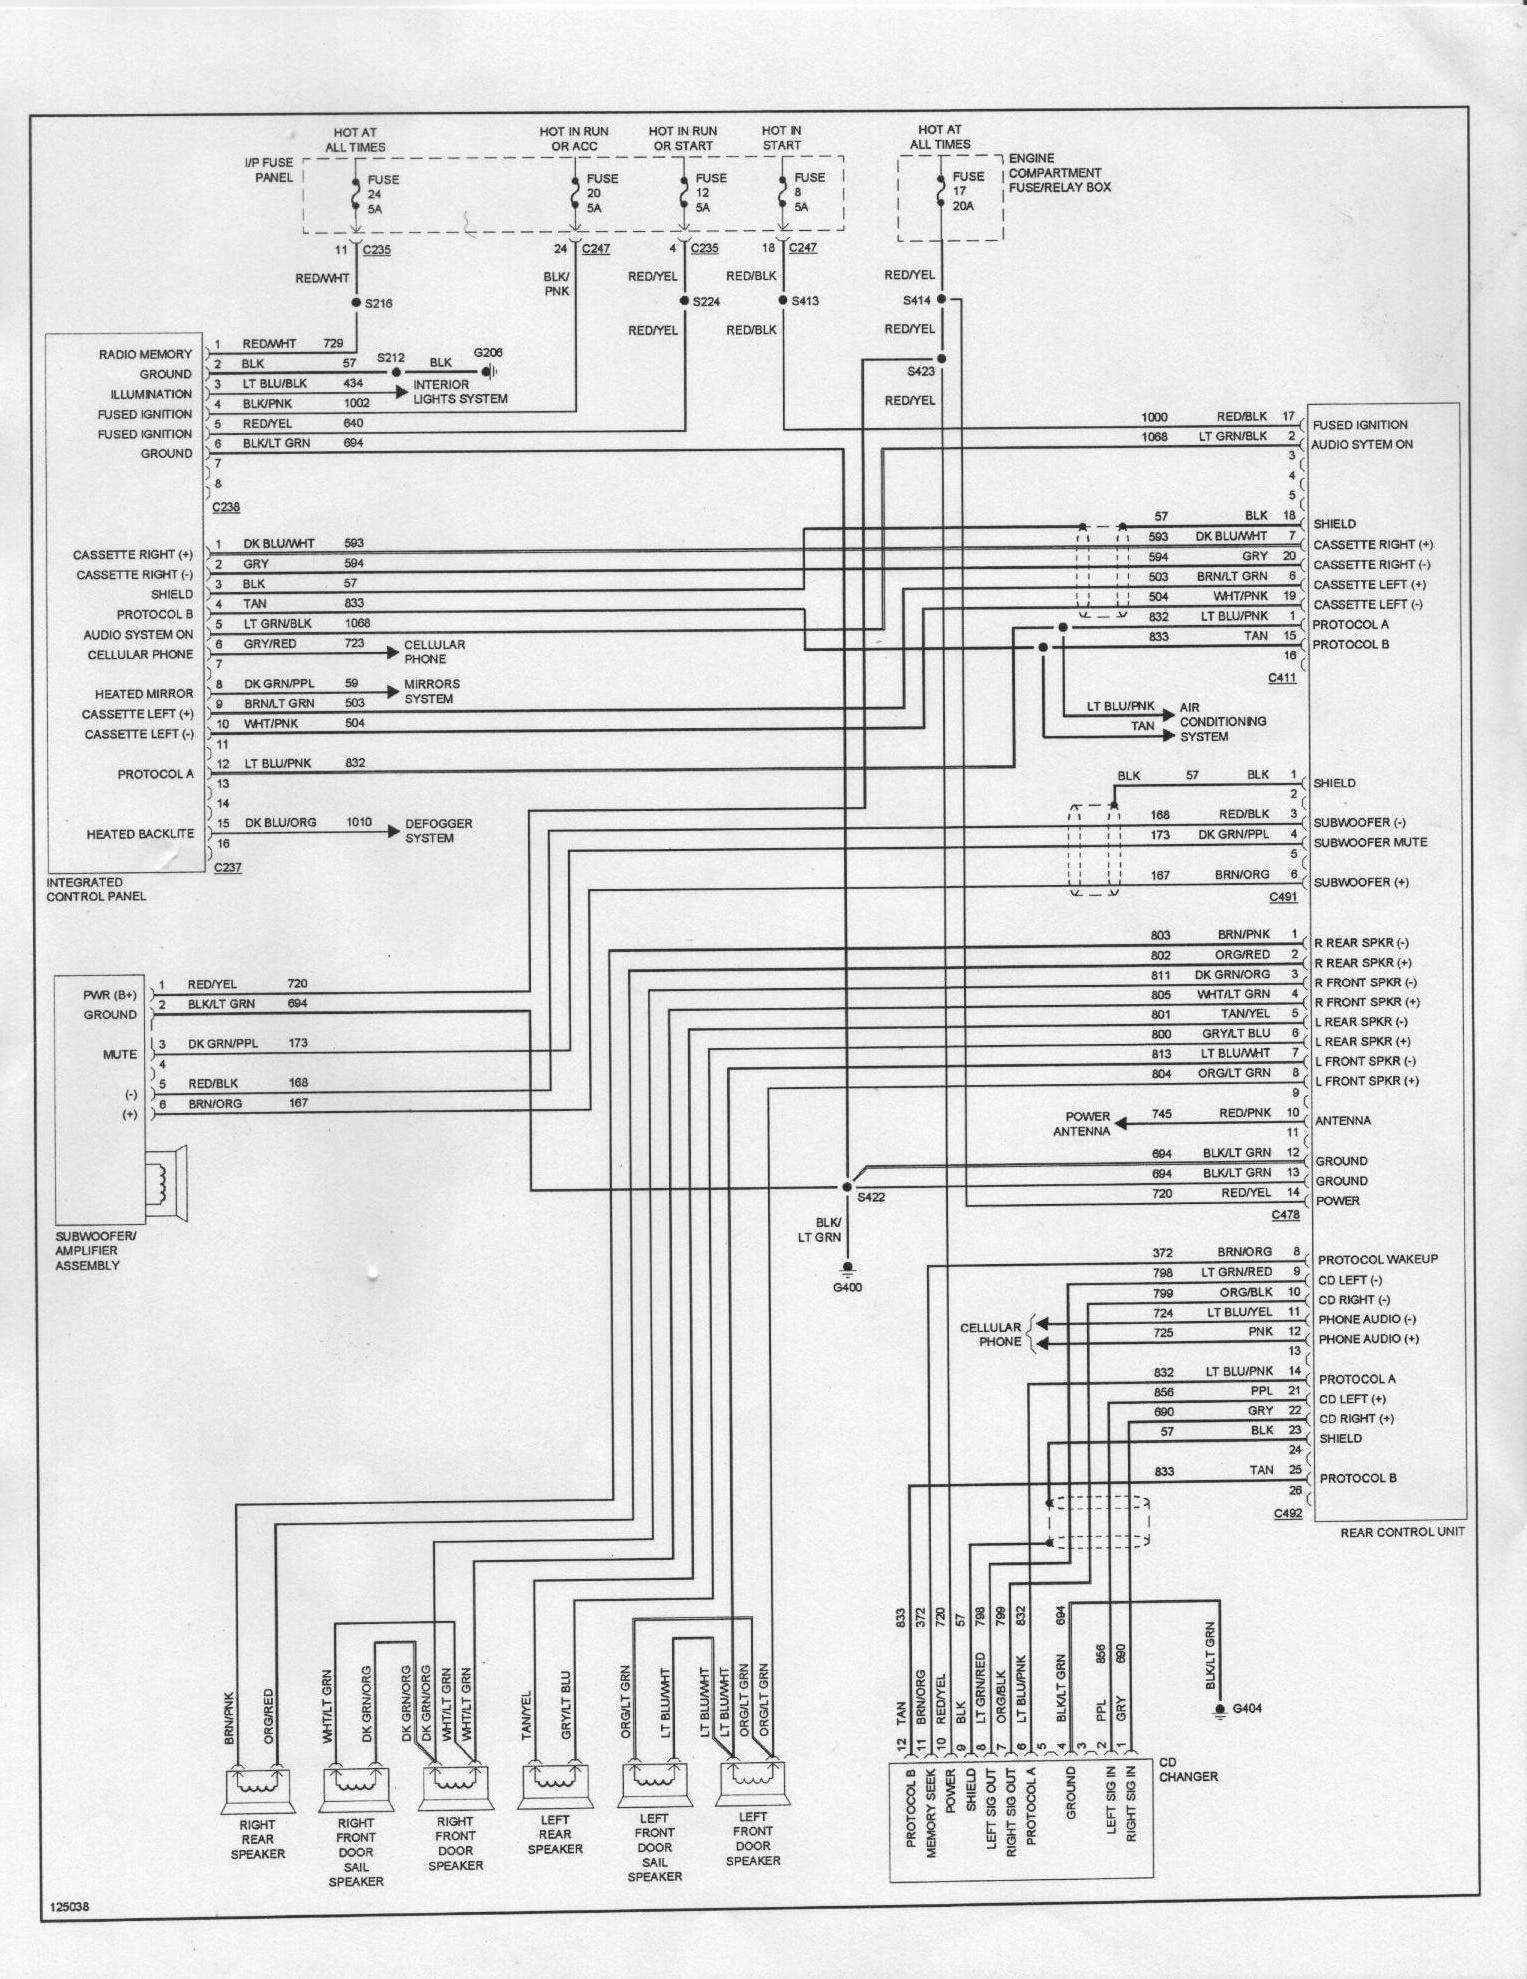 wiring diagram ford taurus taurus car club of america ford rh taurusclub com 2004 ford taurus wiring diagram ford taurus wiring diagram for power windows